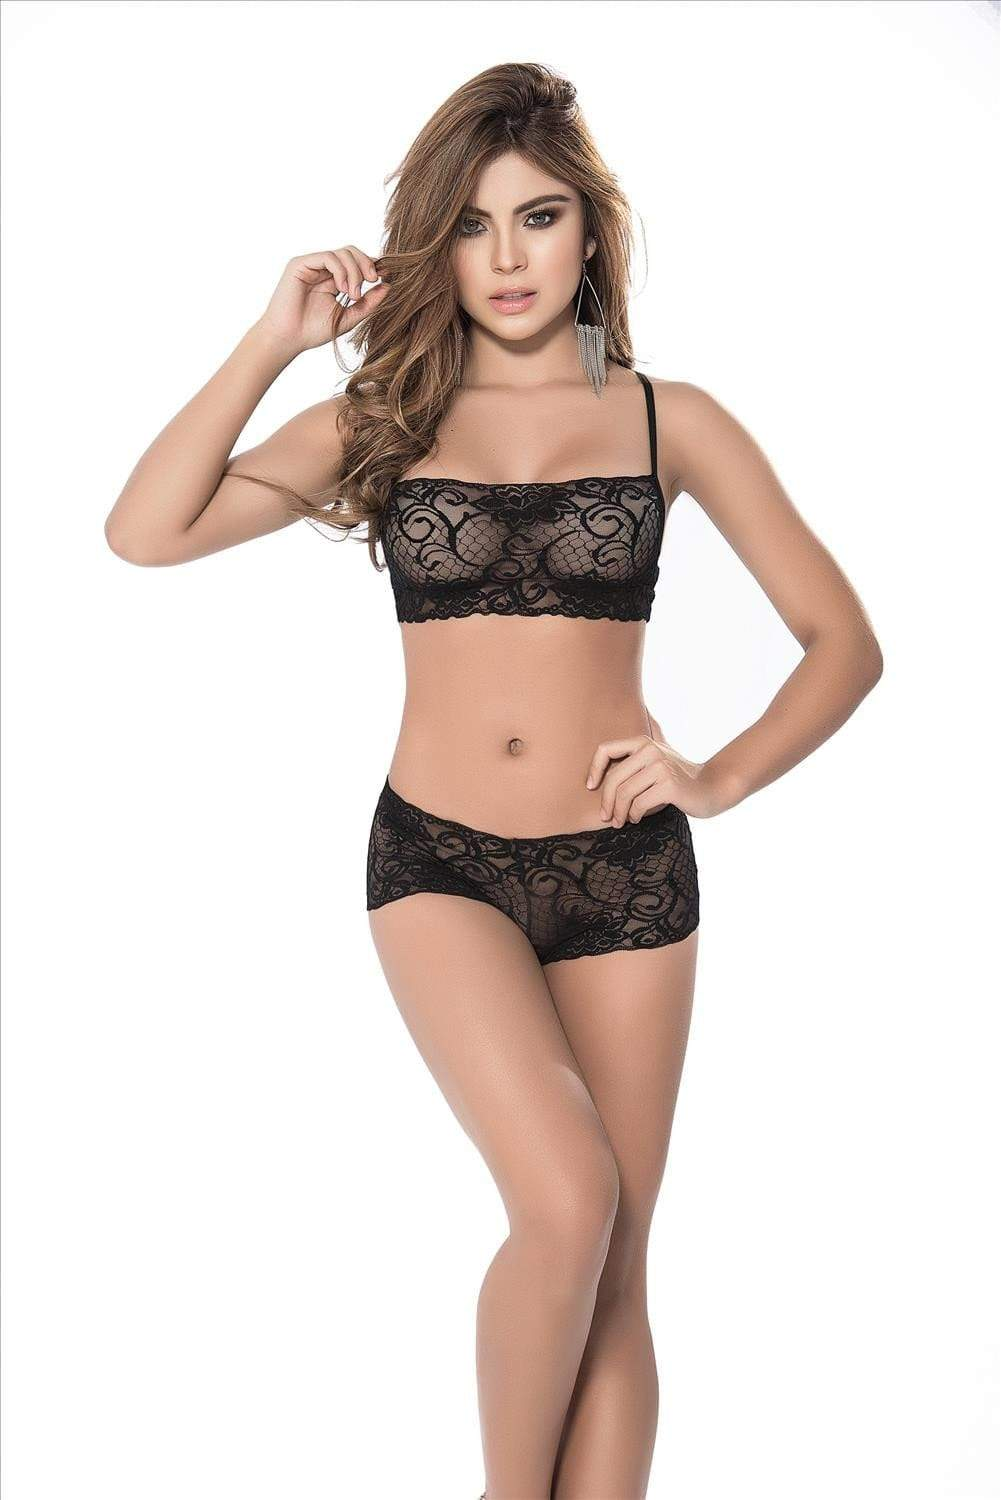 mapale Black / Small Sexy Black  Lace Top & Boy Short Panty Two Piece Lingerie Set (Many colors available) ESP-206-BLACK-SMALL Apparel & Accessories > Clothing > Underwear & Socks > Lingerie